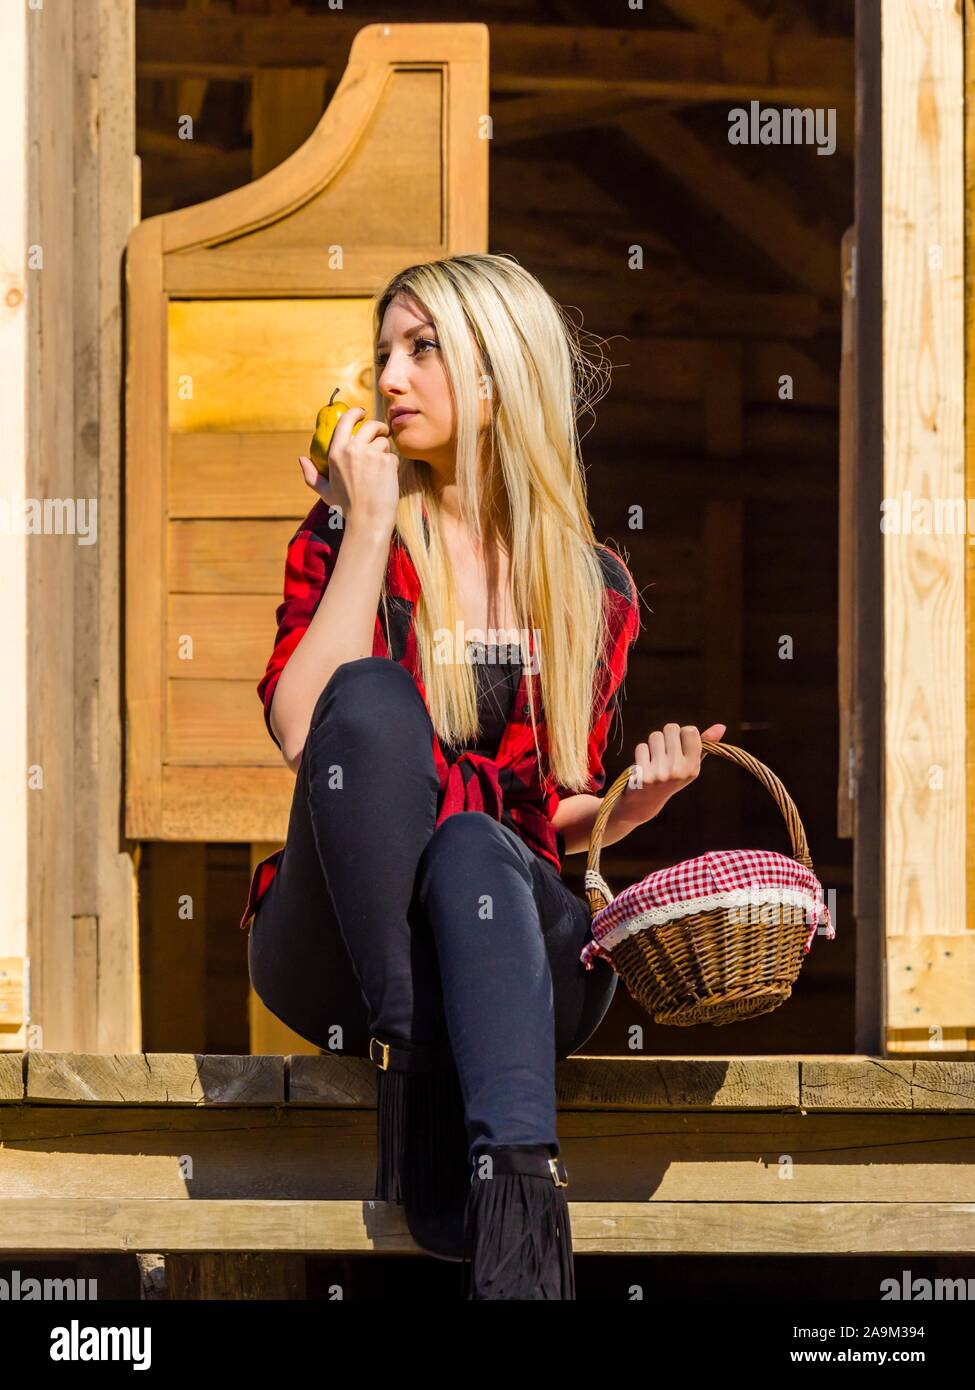 Young woman in village wooden house porch entrance to Western-style bar saloon hand hands hold holding pear fruit and basket Stock Photo